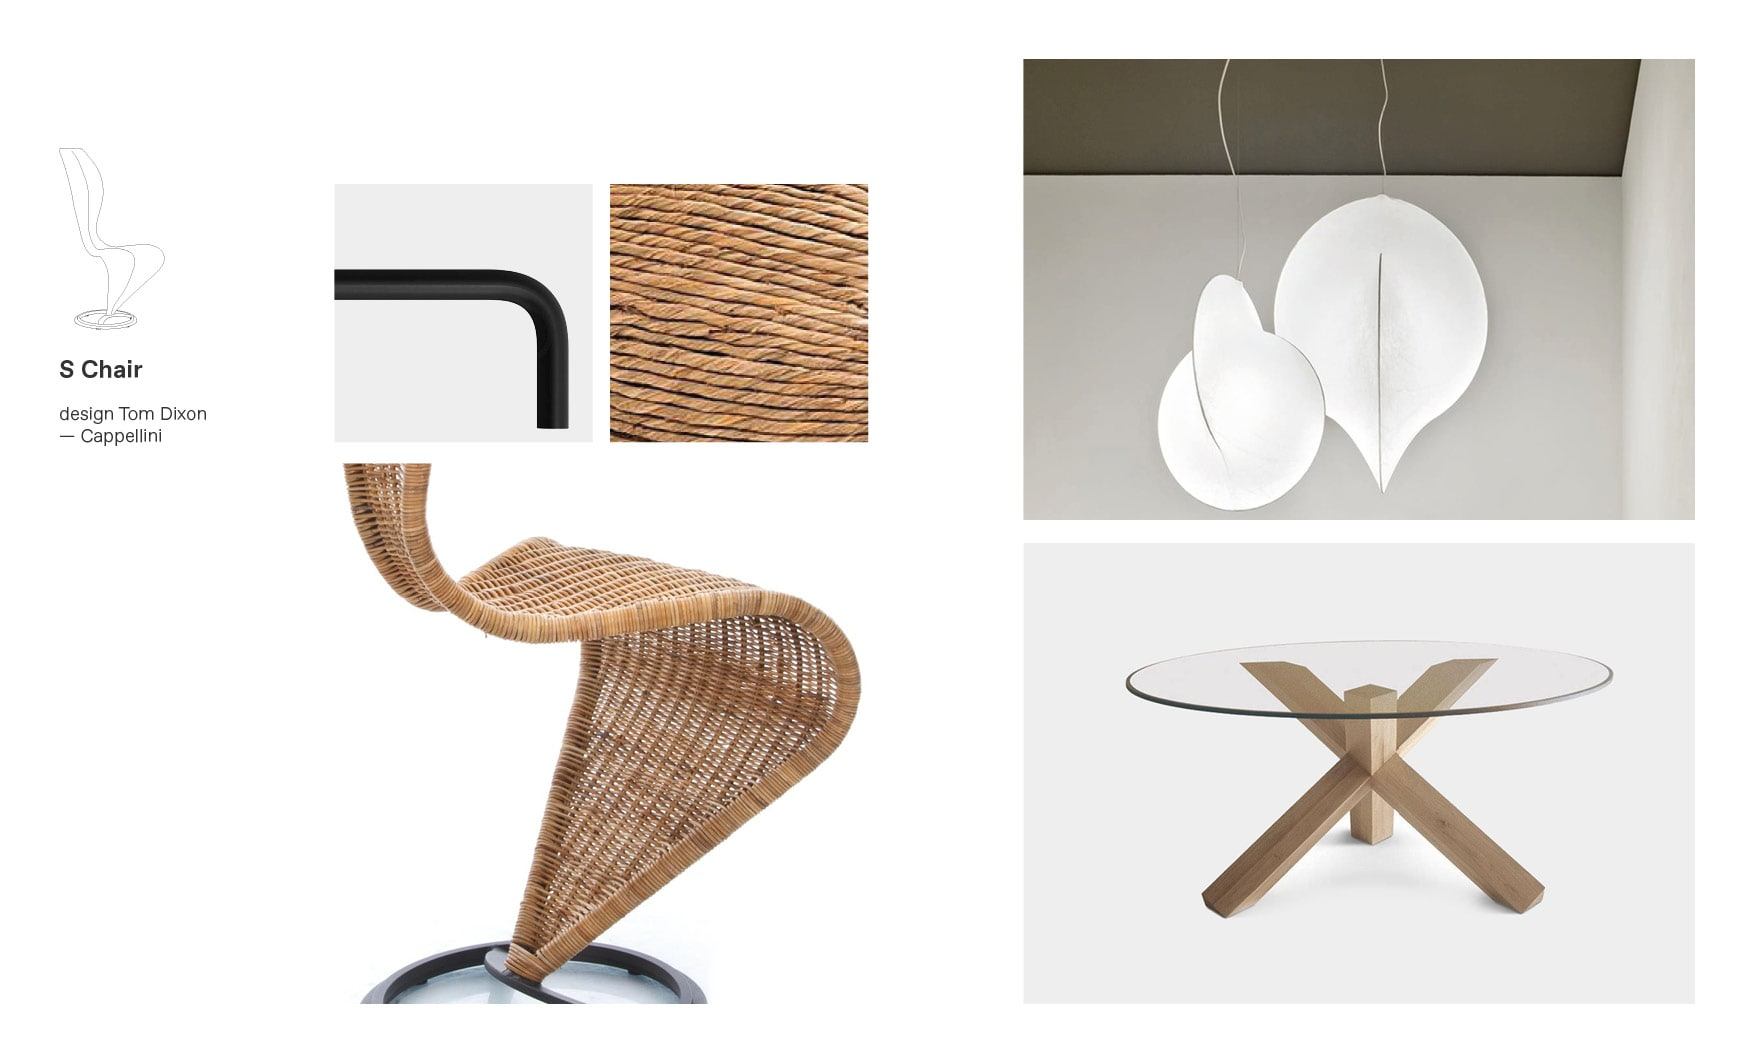 Cappellini chairs and S-Chair moodboard composition